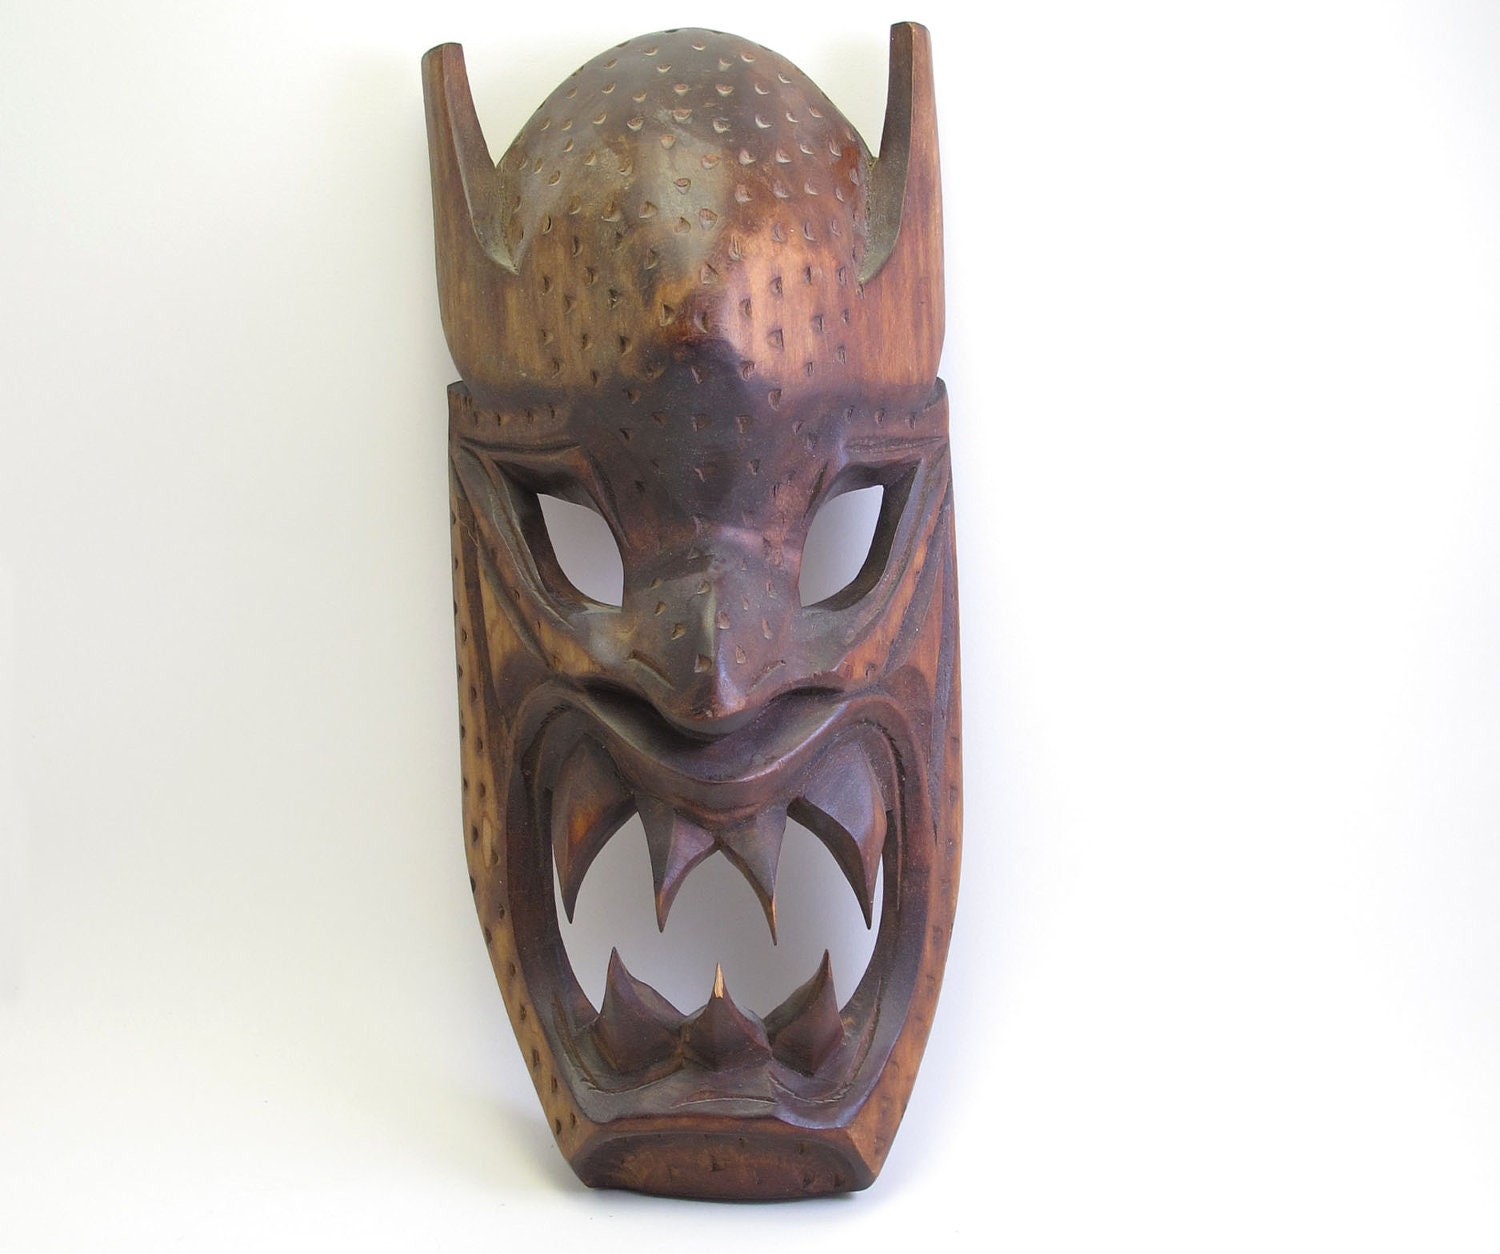 Vintage Wooden Ethnic Evil Monster Mask Carving